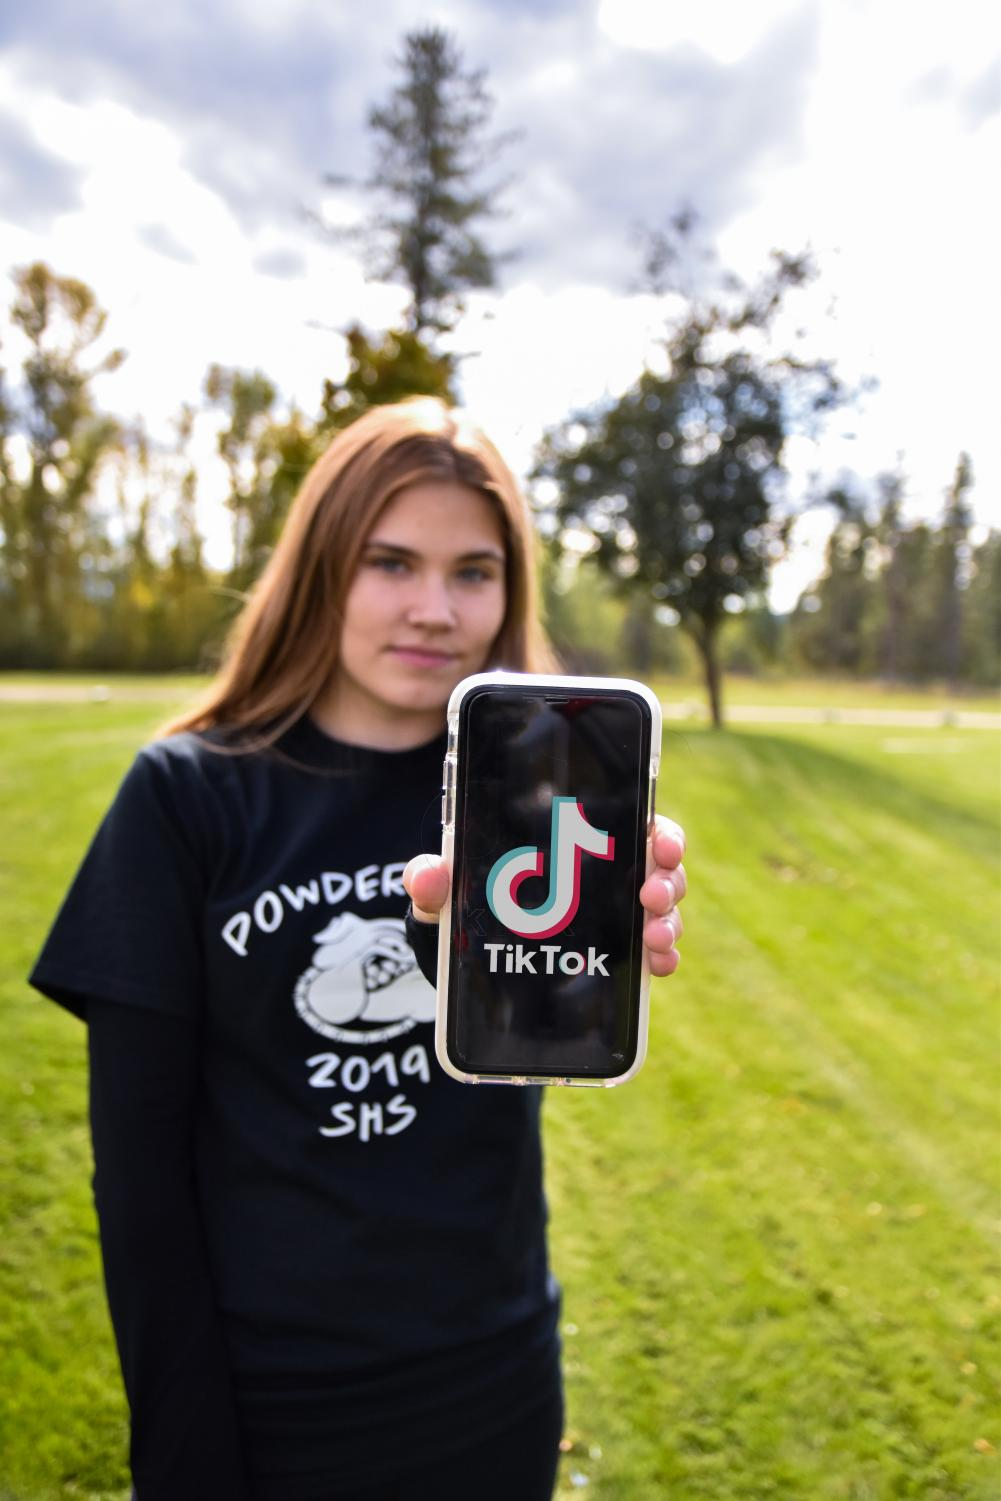 Senior Madalyn Matilla has more than 52,000 followers on the social media app TikTok.